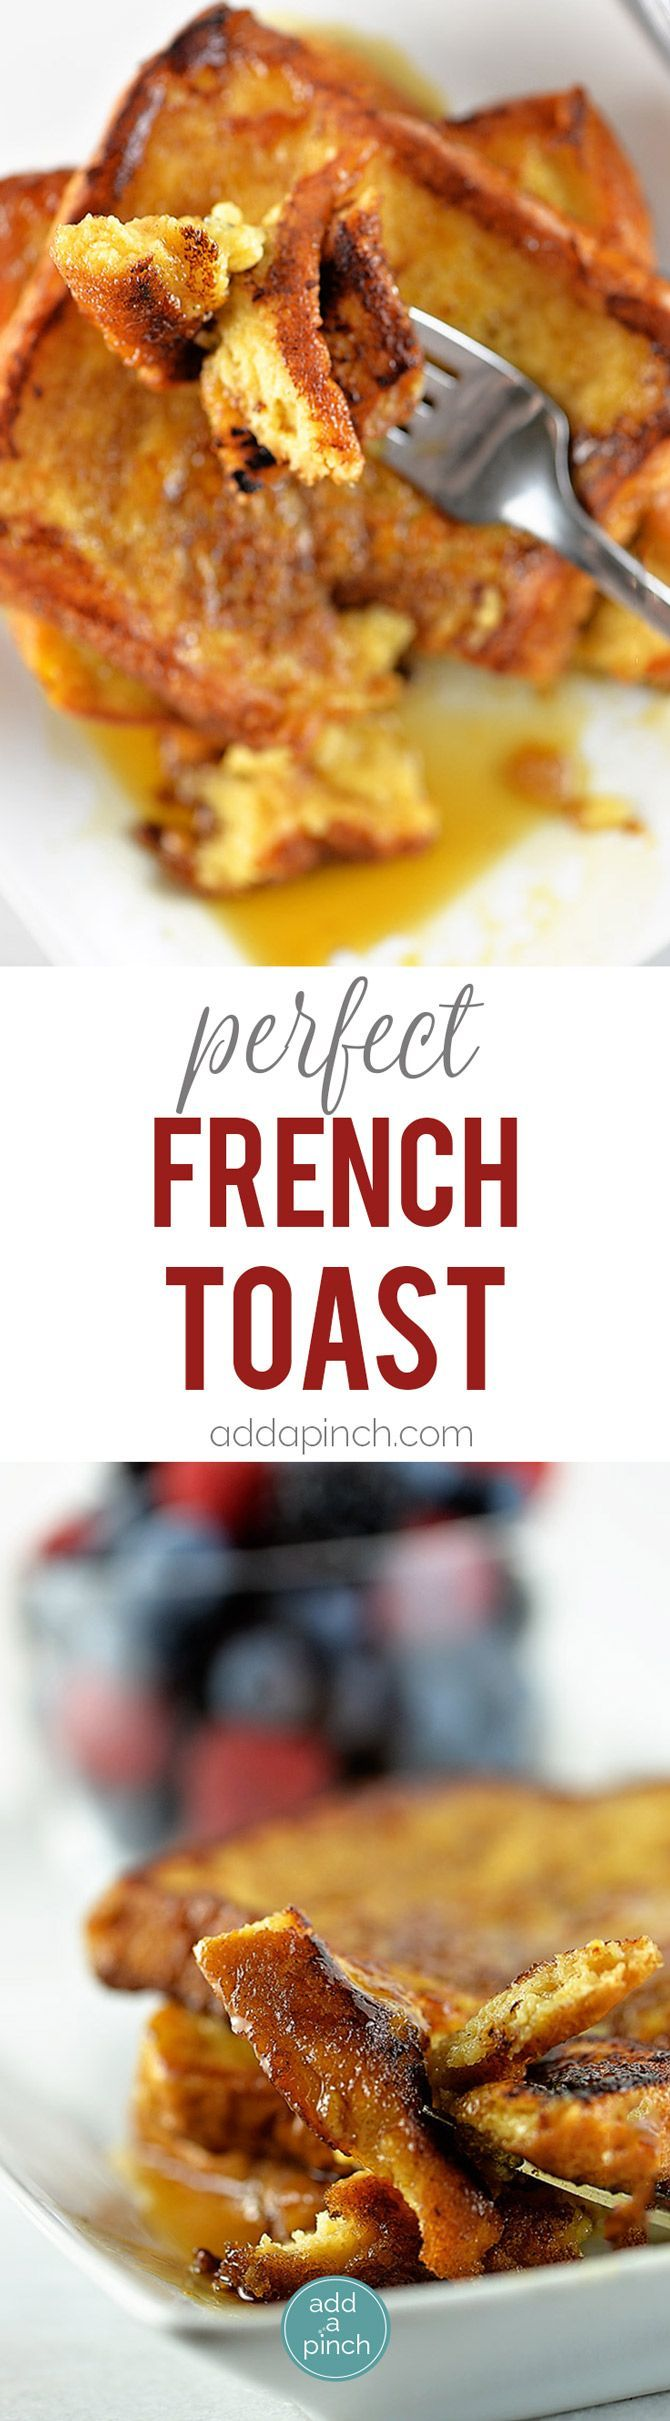 Perfect French Toast - This French toast recipe makes a delicious breakfast or brunch. Make this simple, yet perfect French toast recipe that everyone will love. // addapinch.com